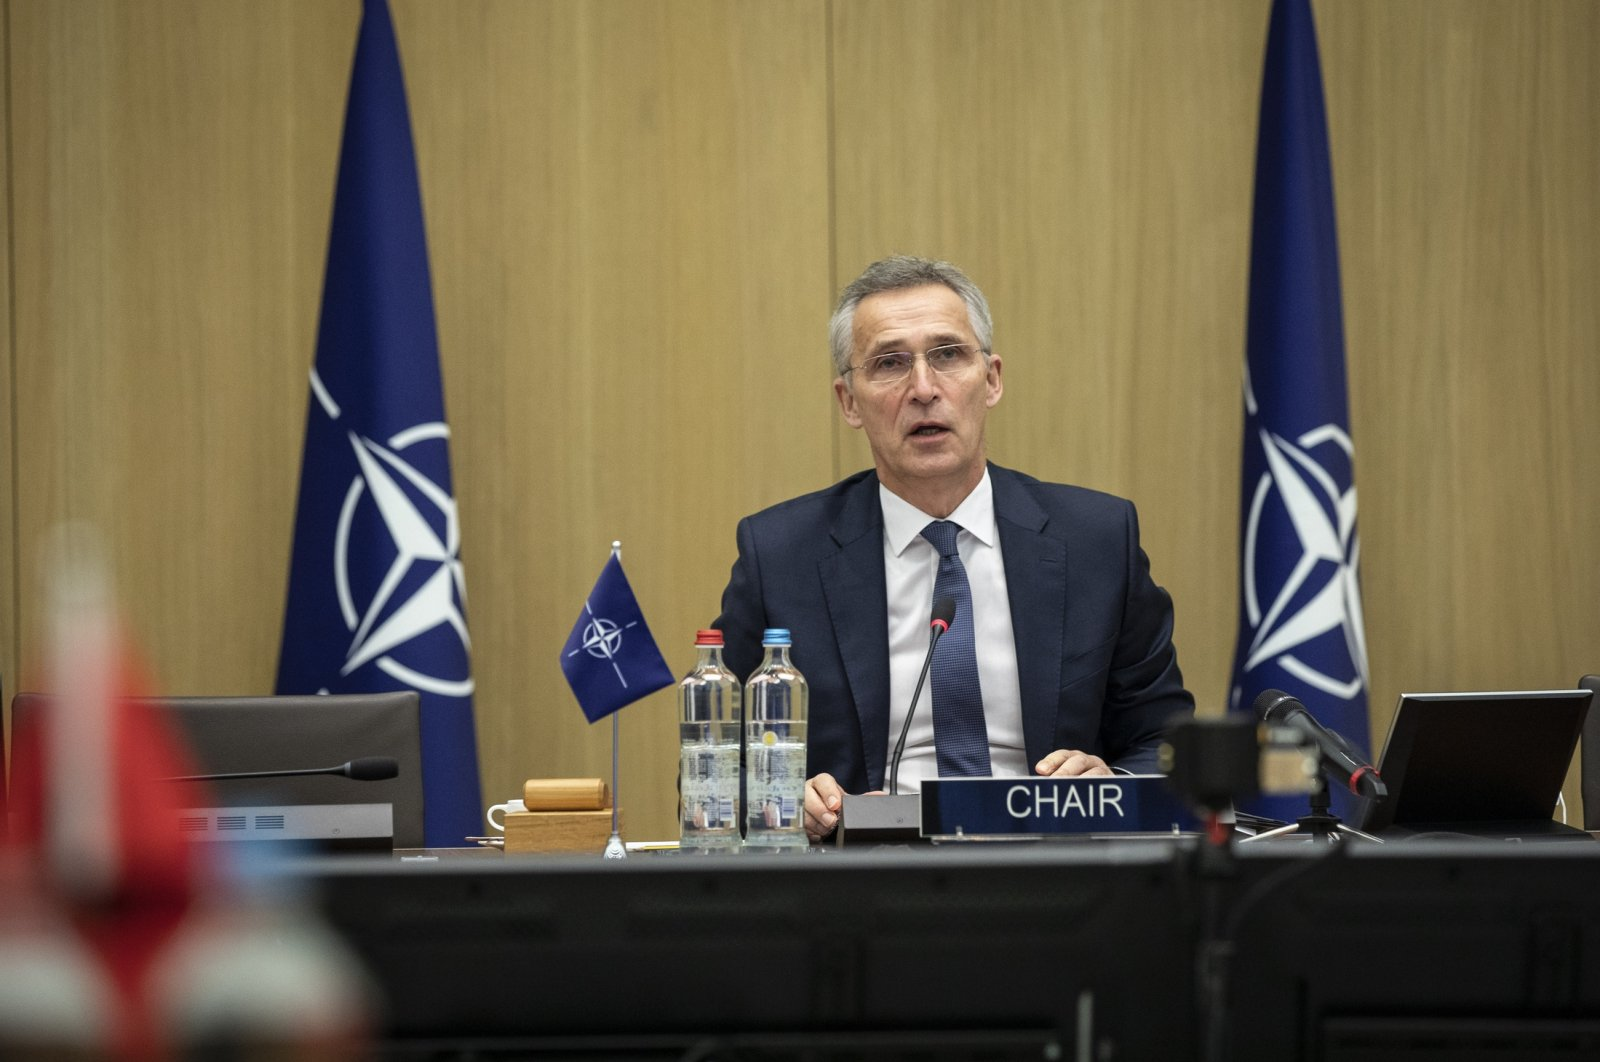 NATO Secretary-General Jens Stoltenberg speaks at the NATO foreign ministers meeting in Brussels, Belgium, Dec. 2, 2020. (AA Photo)